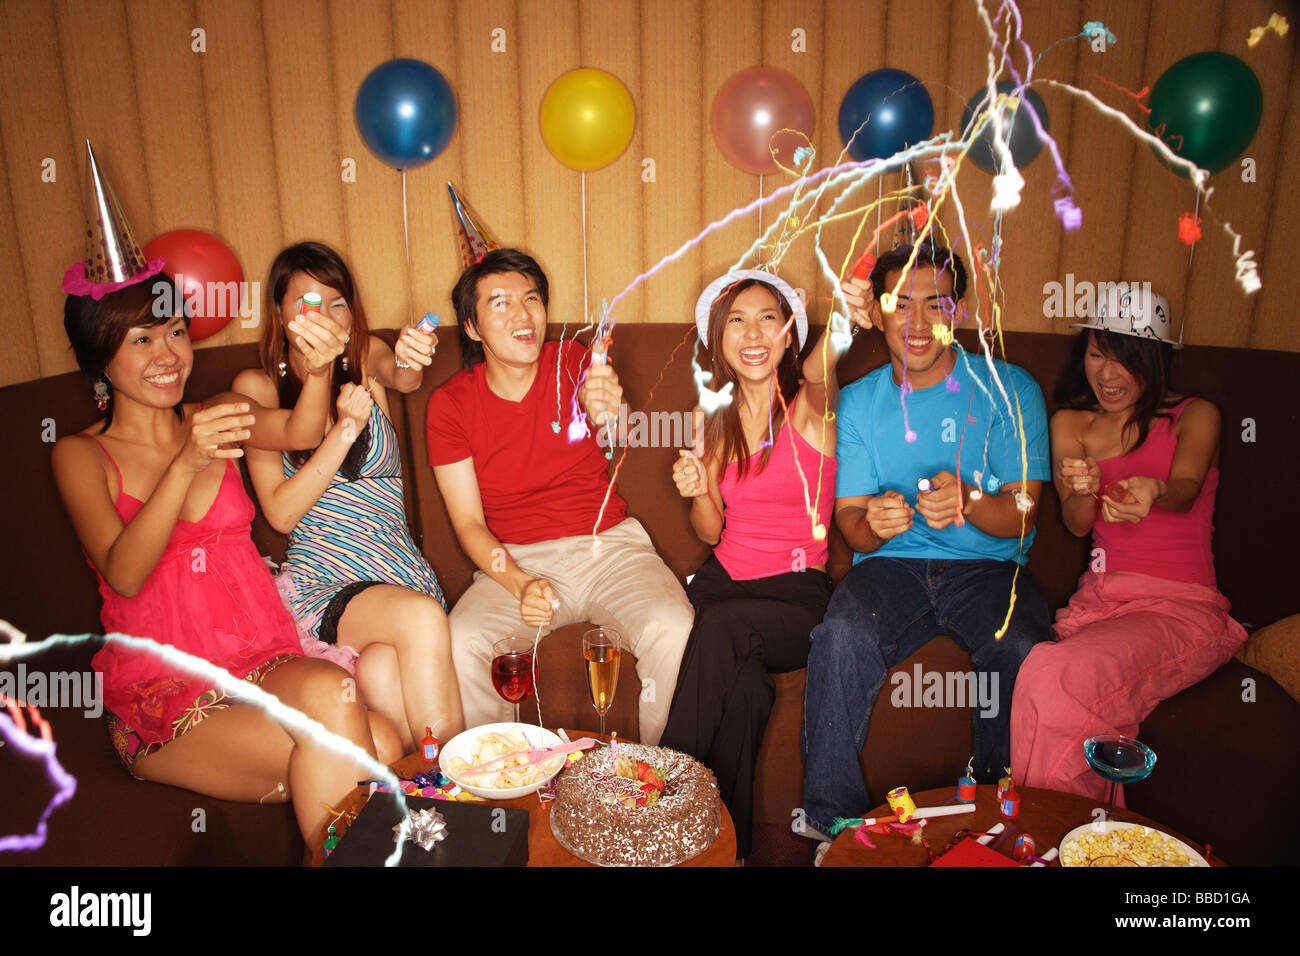 Young Adults Celebrating With Crackers Party Hats And Balloons